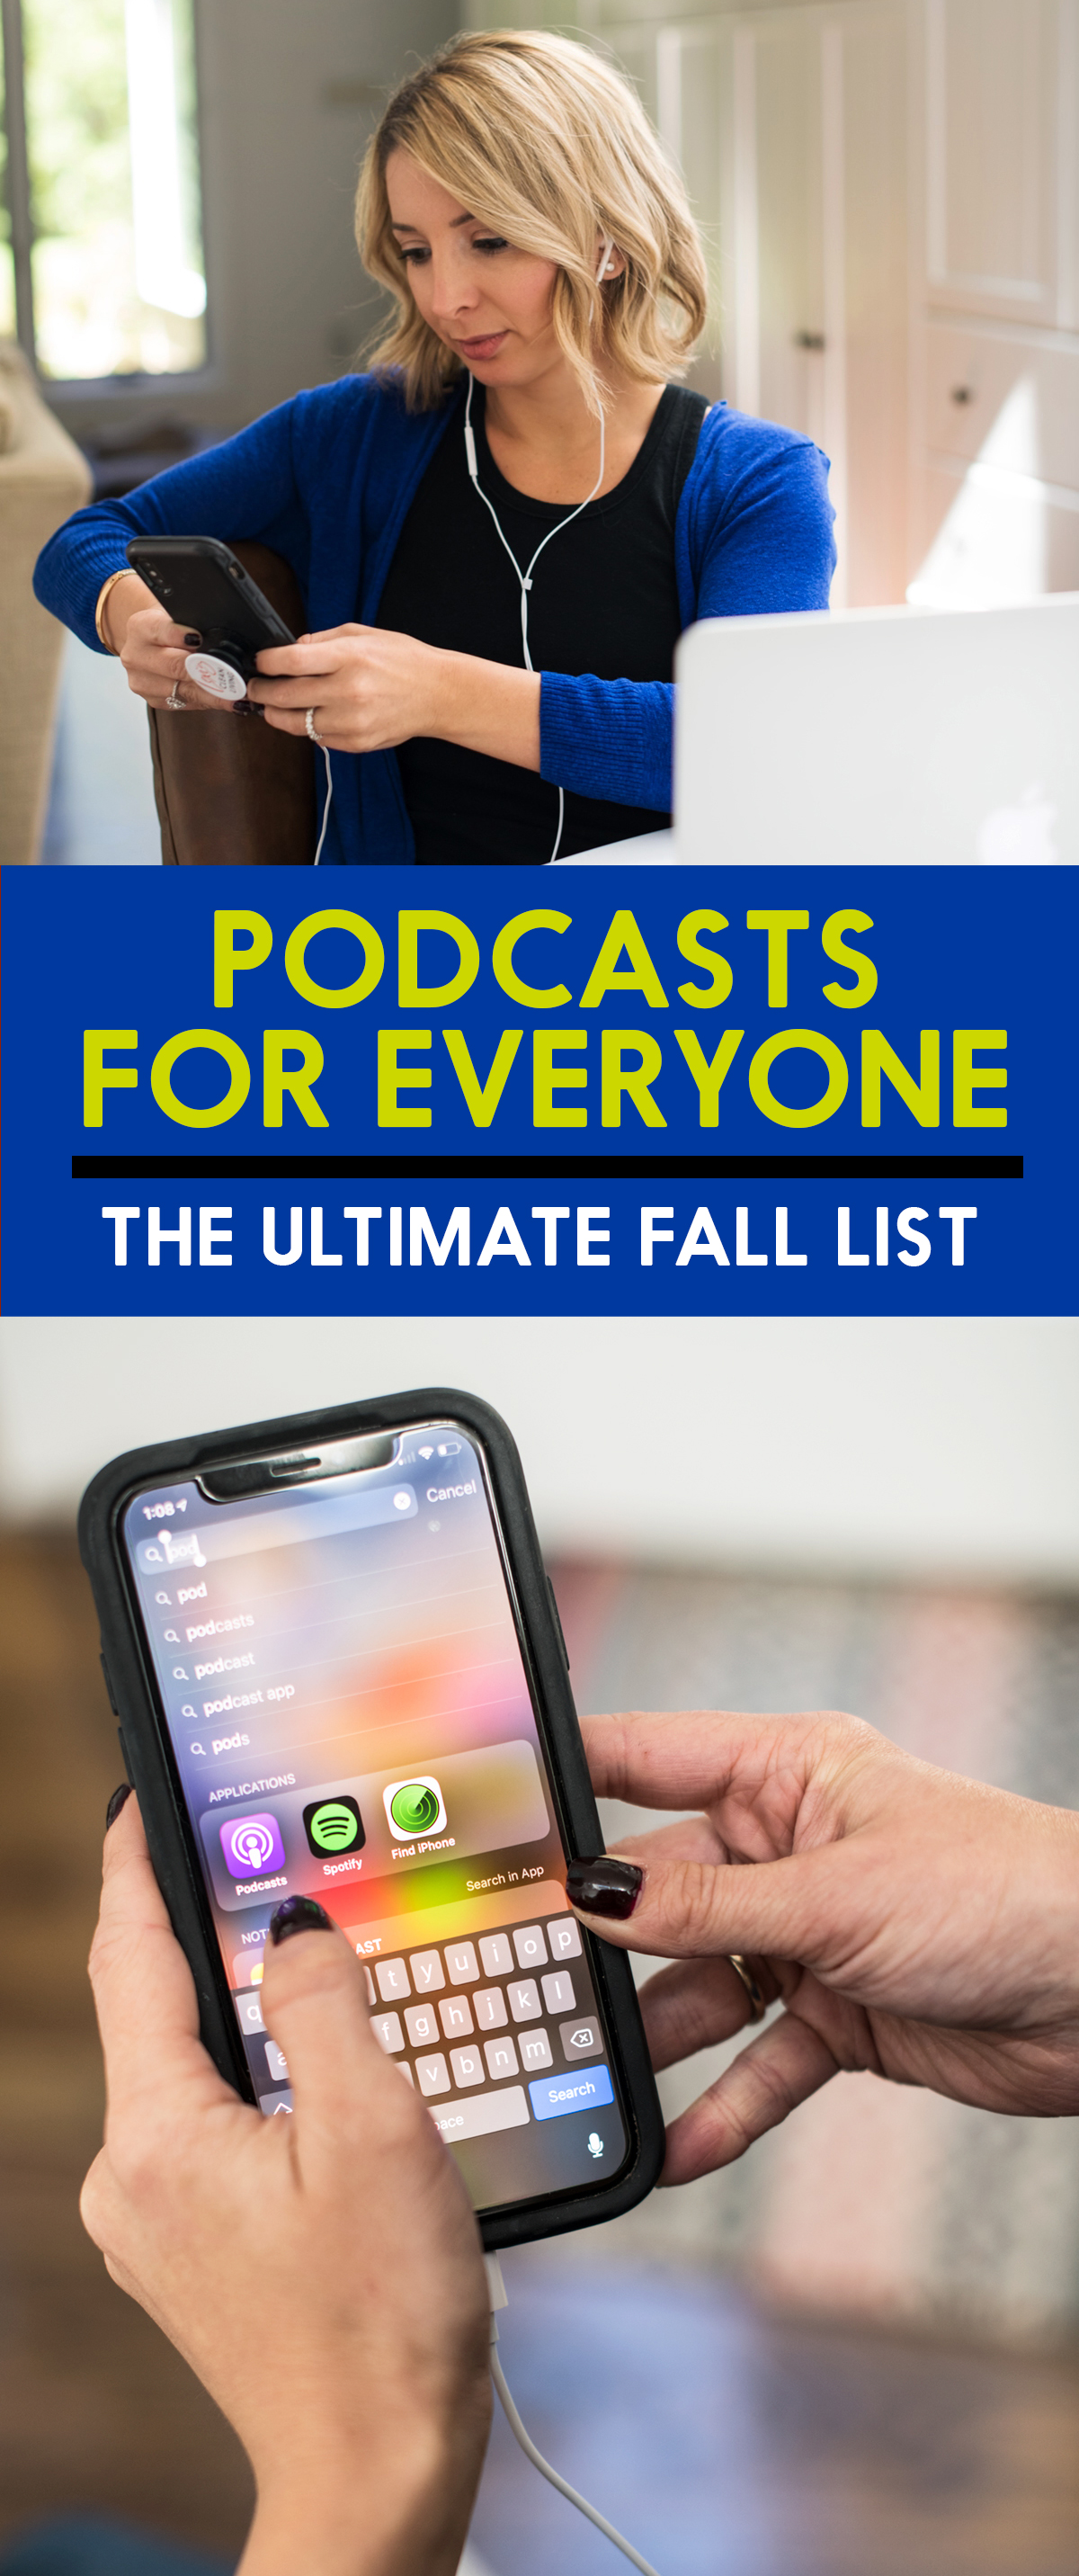 Podcasts to Listen to